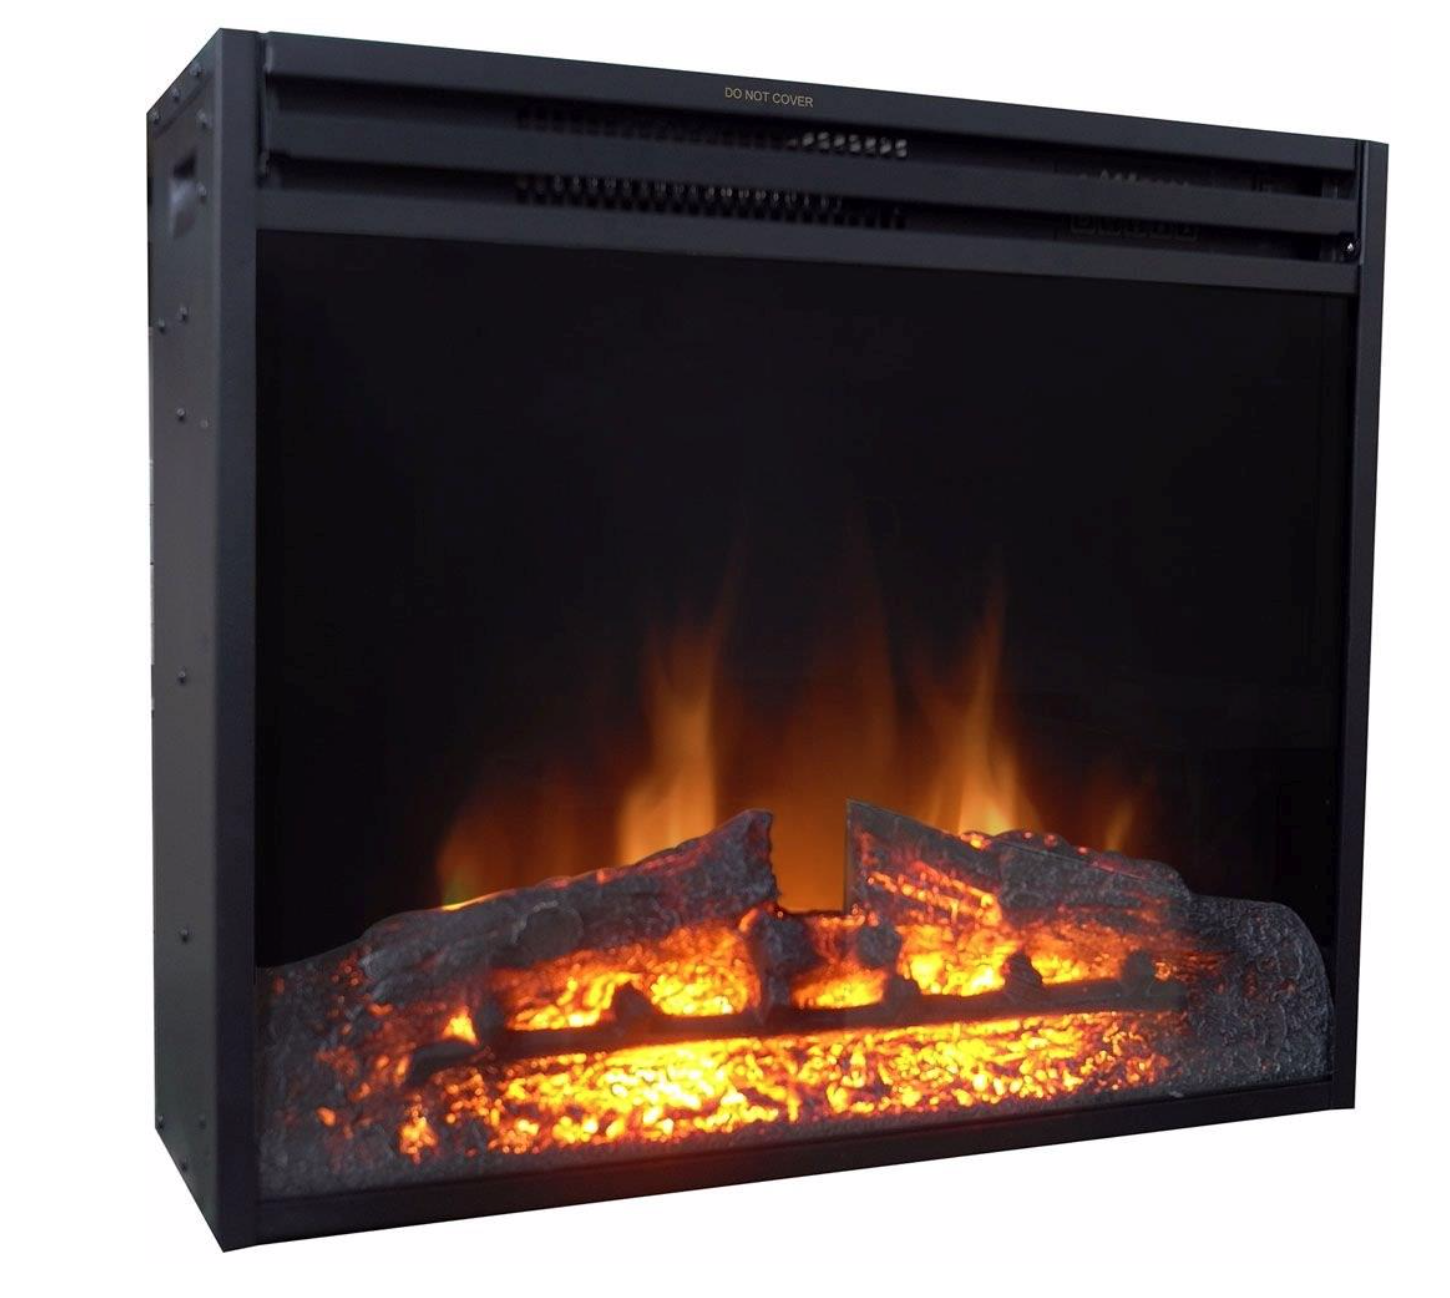 Do You Have A Built In Fireplace But Avoid Using It Due To The Mess And Maintenance Of A Rea Fireplace Inserts Electric Fireplace Heater Freestanding Fireplace